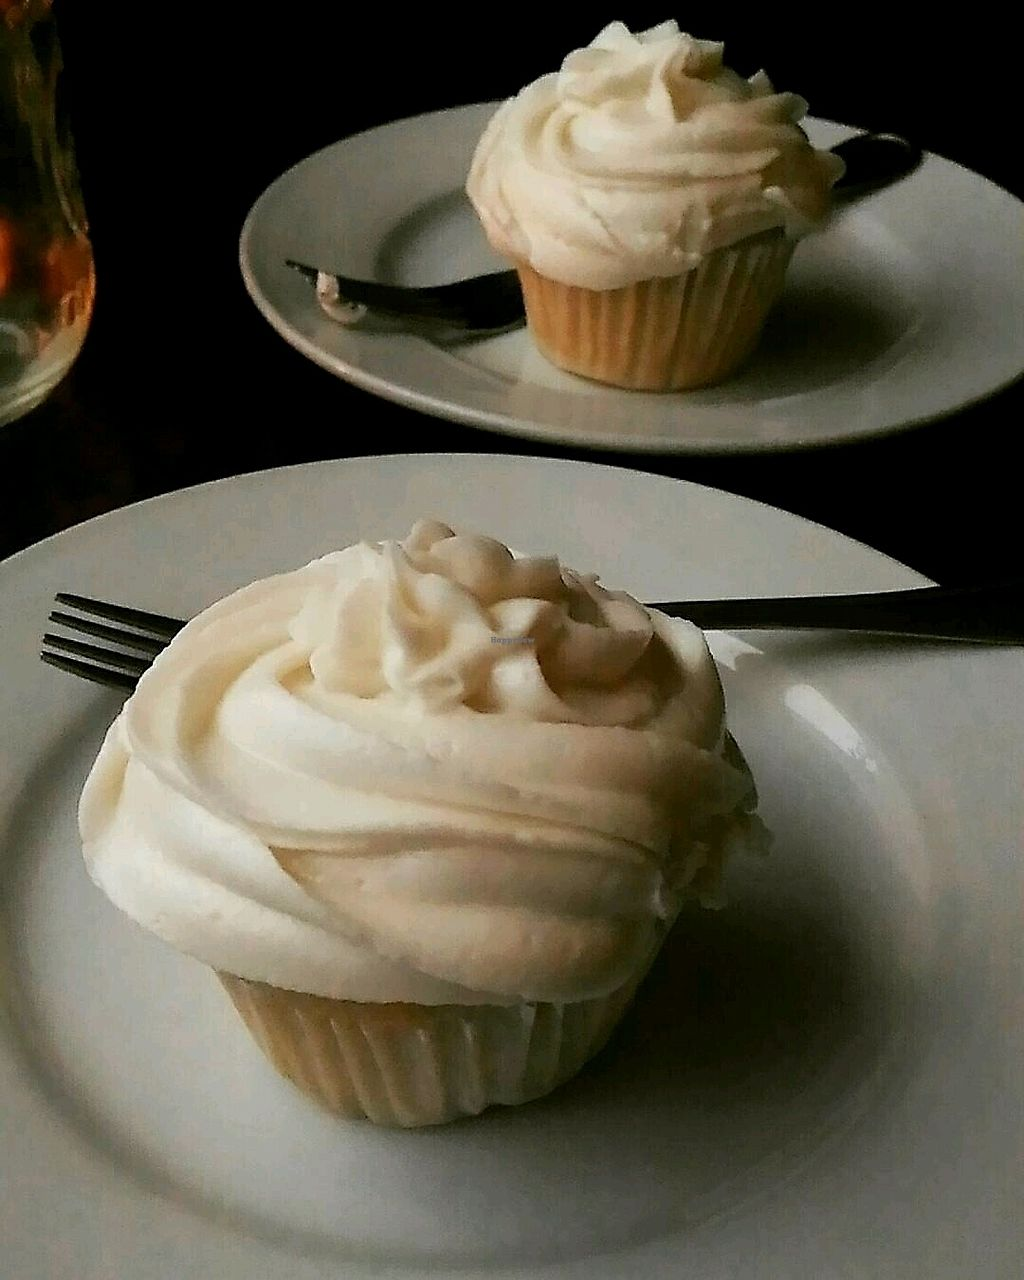 """Photo of Wild Leek  by <a href=""""/members/profile/QuothTheRaven"""">QuothTheRaven</a> <br/>vanilla cupcakes <br/> November 11, 2017  - <a href='/contact/abuse/image/38899/324350'>Report</a>"""